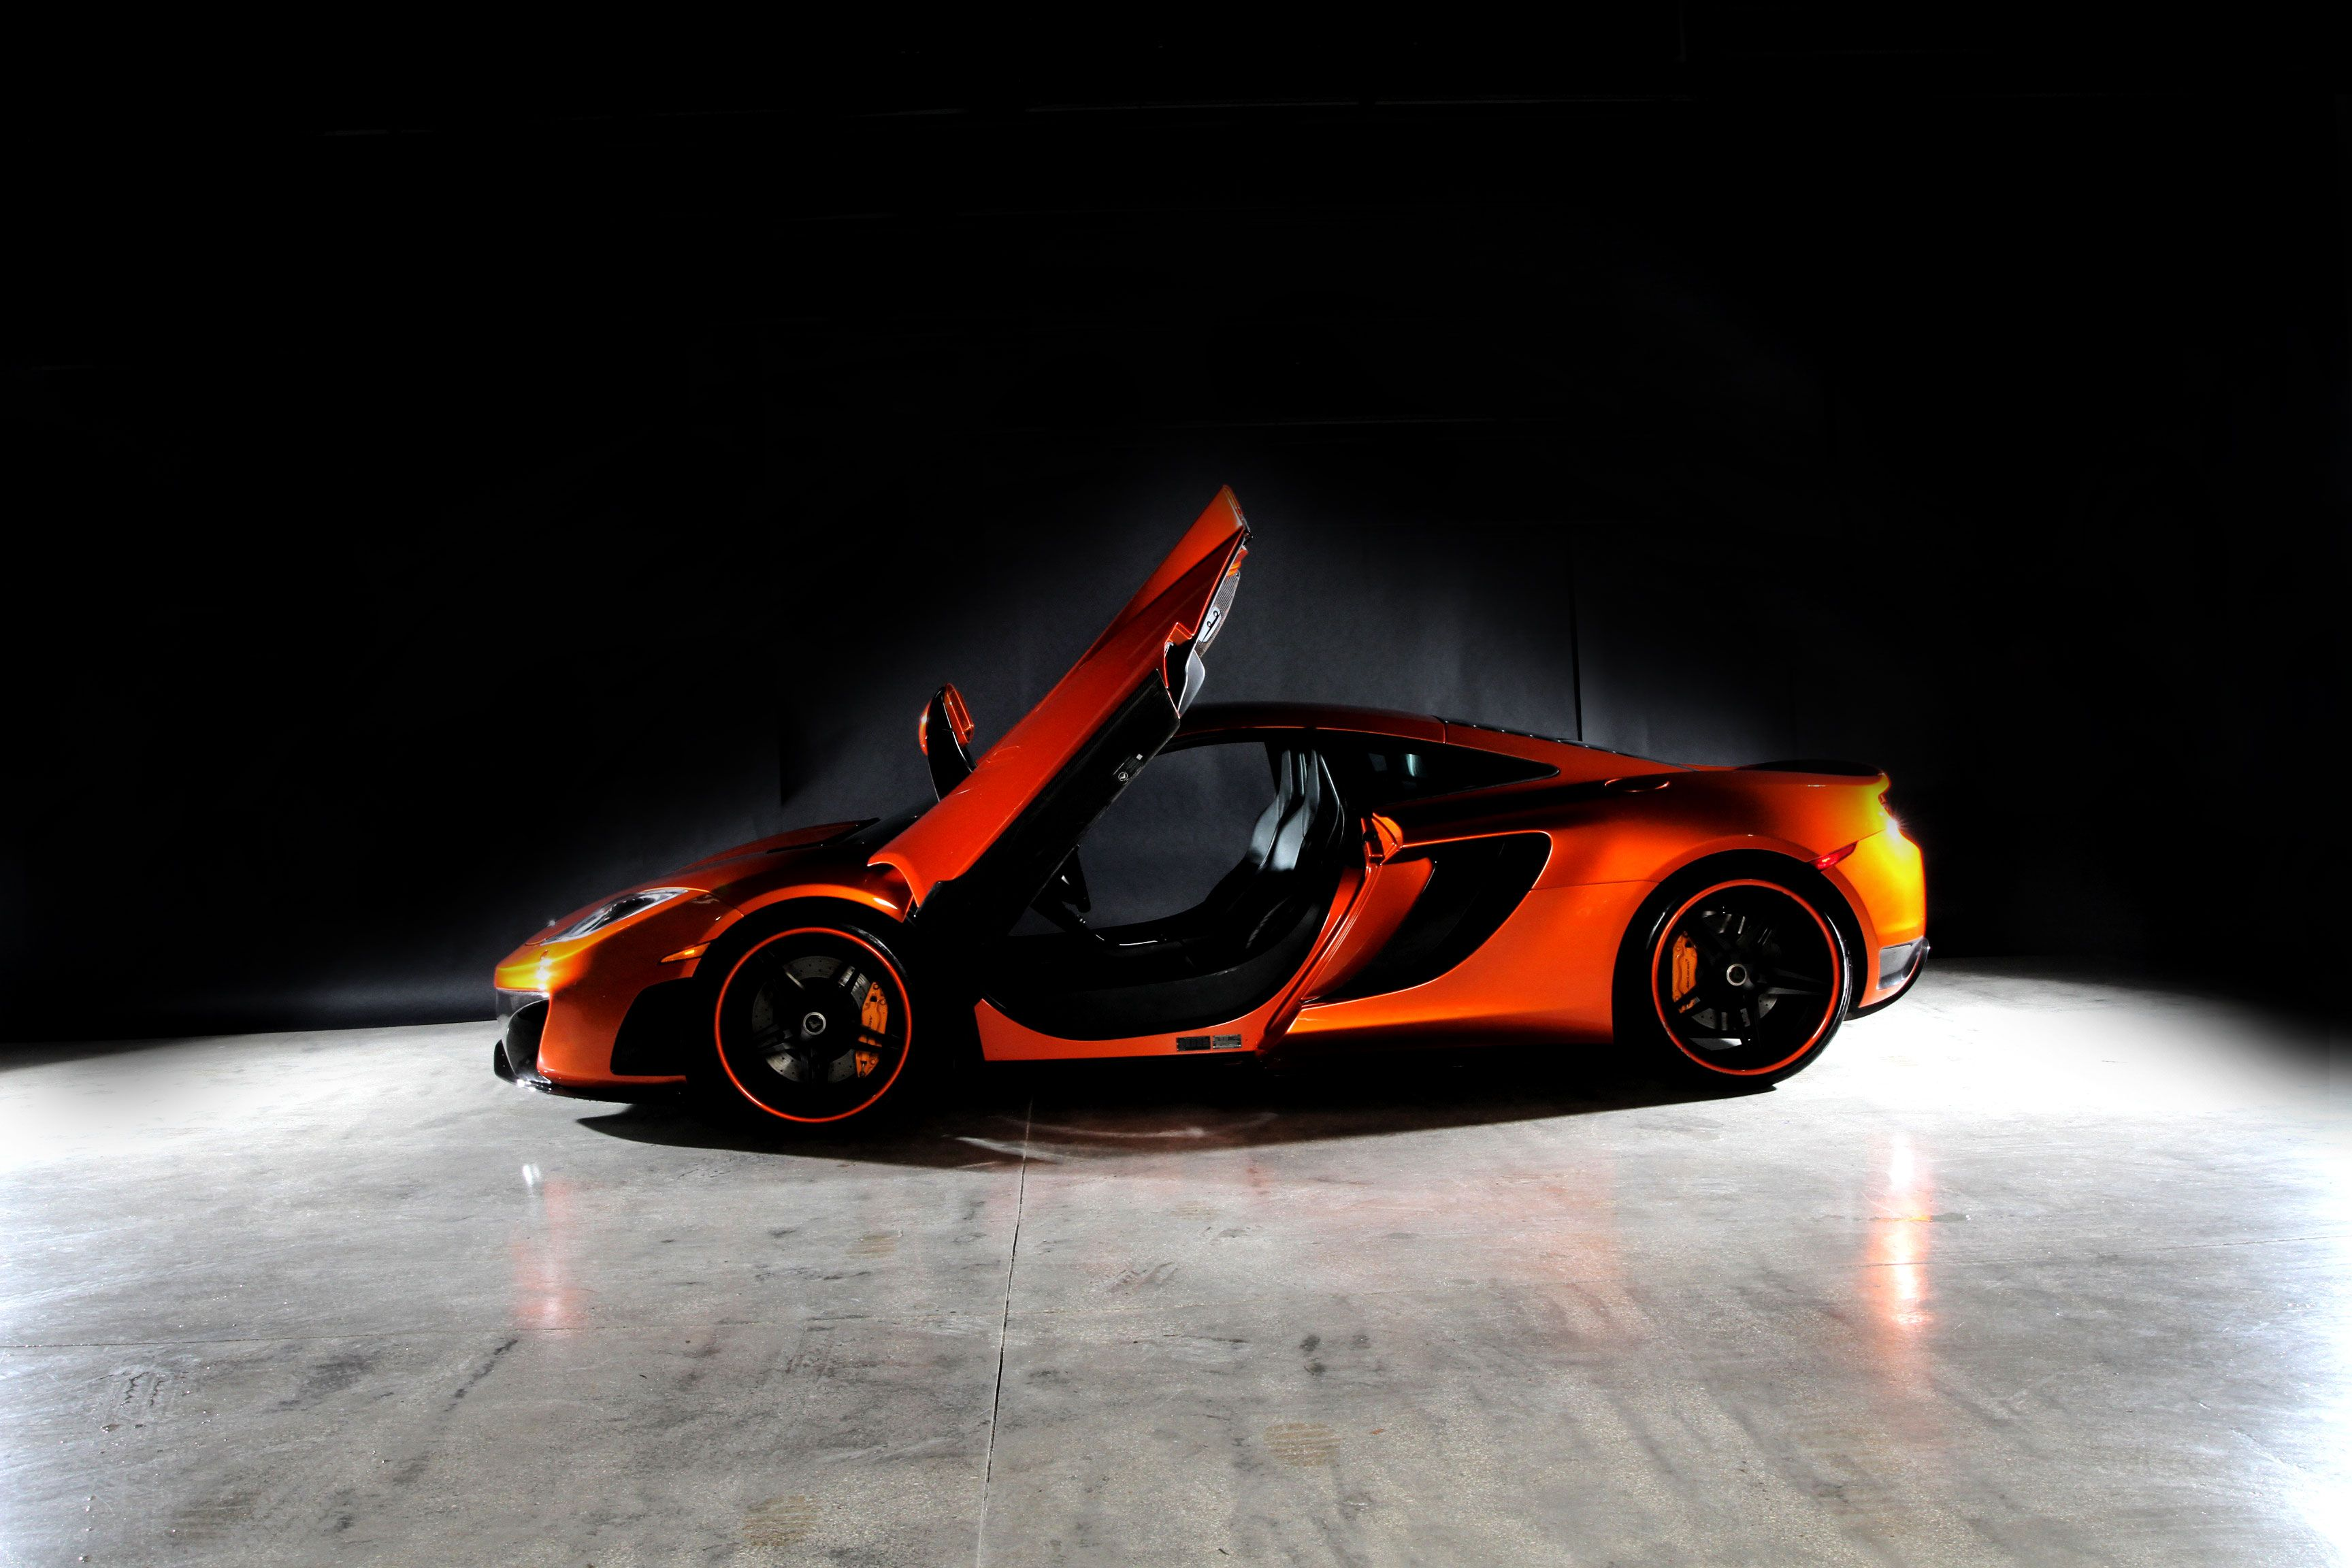 cars performonte vehicles southbeachexoticrentals for img miami perfomonte car luxury rental a lamborghini rent exotic in